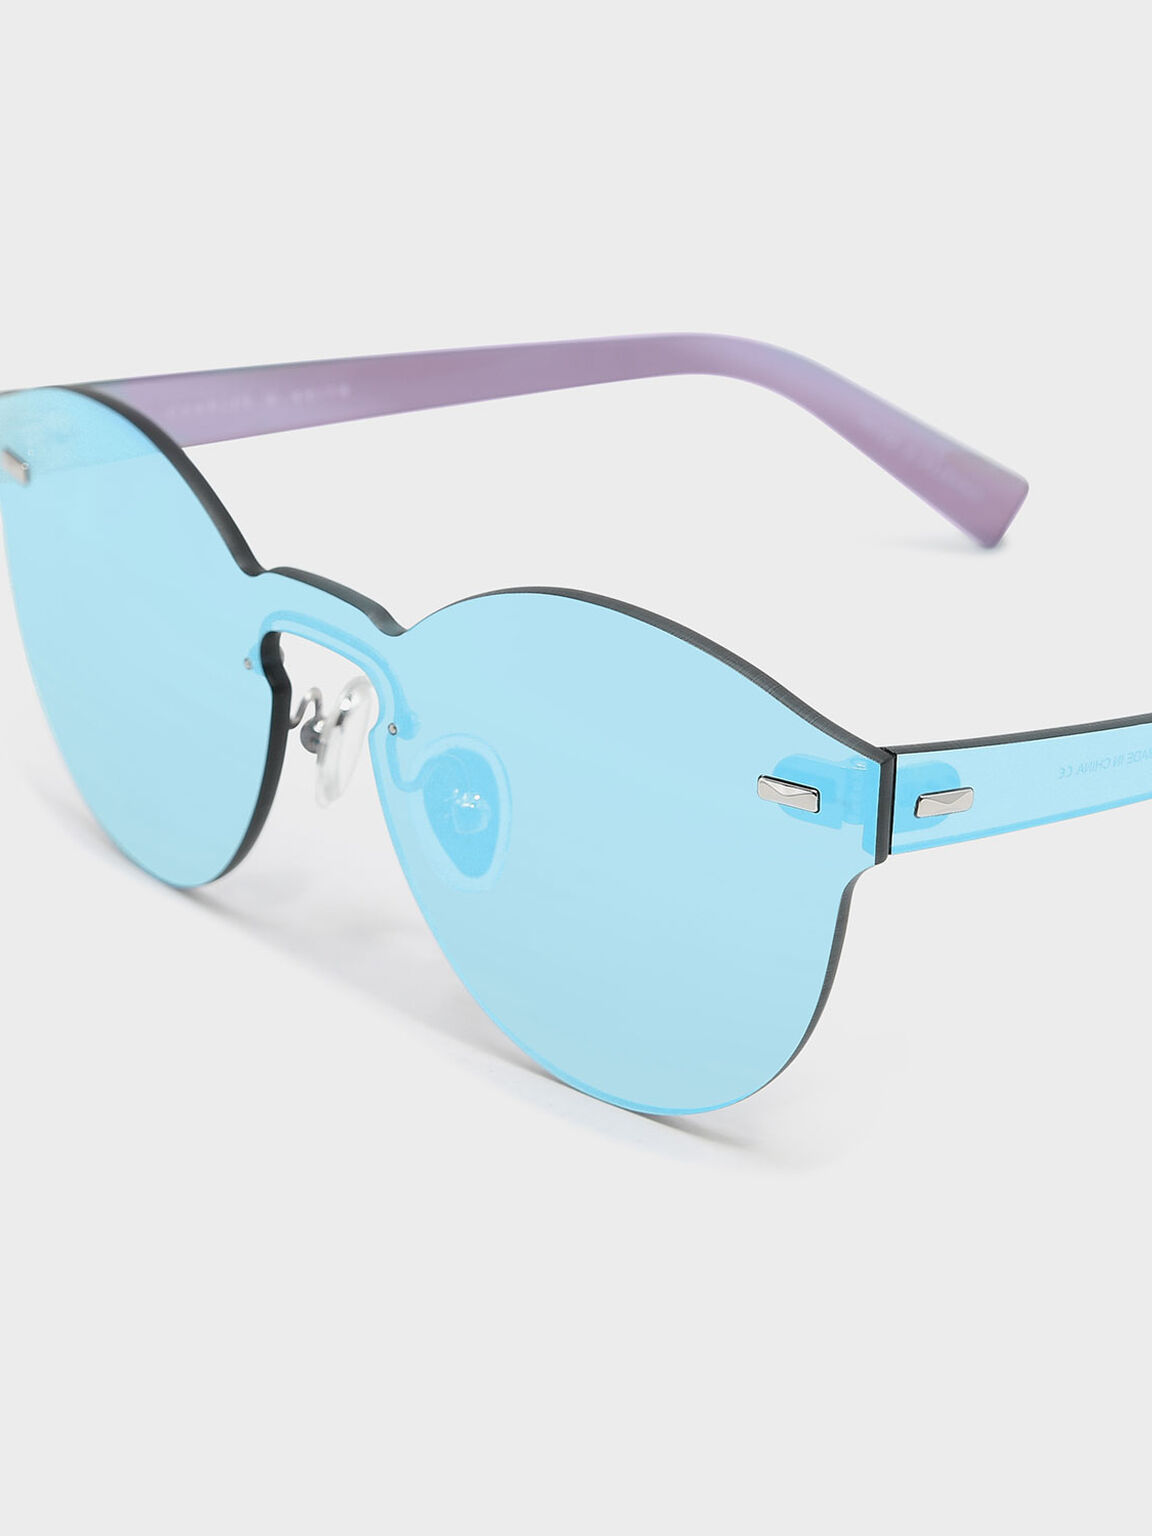 Oval Sunglasses, Blue, hi-res